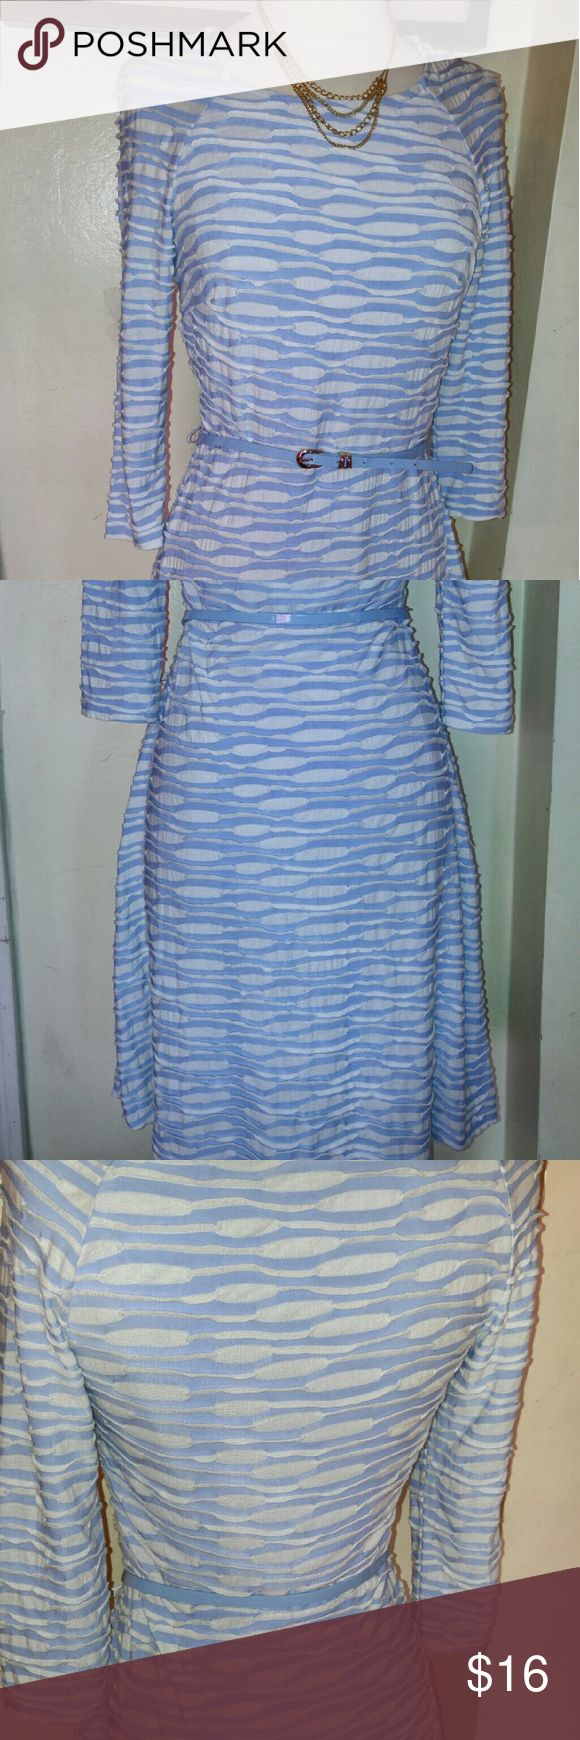 Textured pattern blue & white long dress w belt Gently used blue and white texture pattern long dress with belt size 4. Message me for more details discount for bundle. Thank you for looking. I love offers Dresses